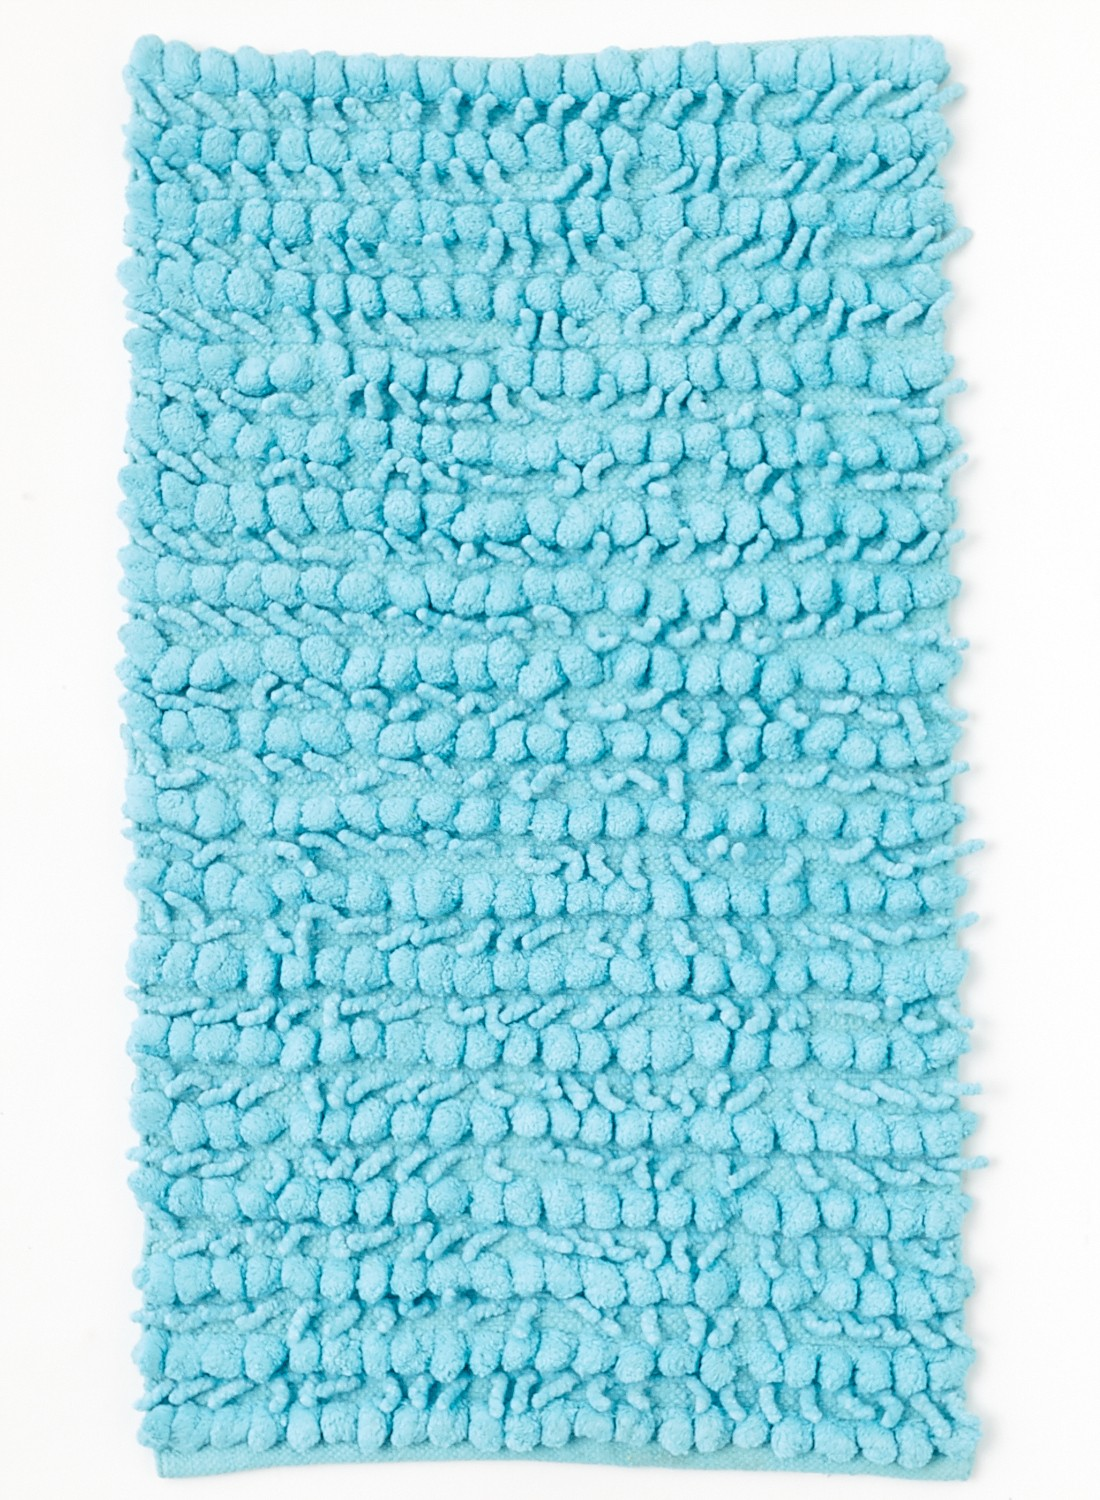 Tapis De Bain Bleu Tapis De Bain Bleu Tapis De Bain Chenille Turquoise Bleu